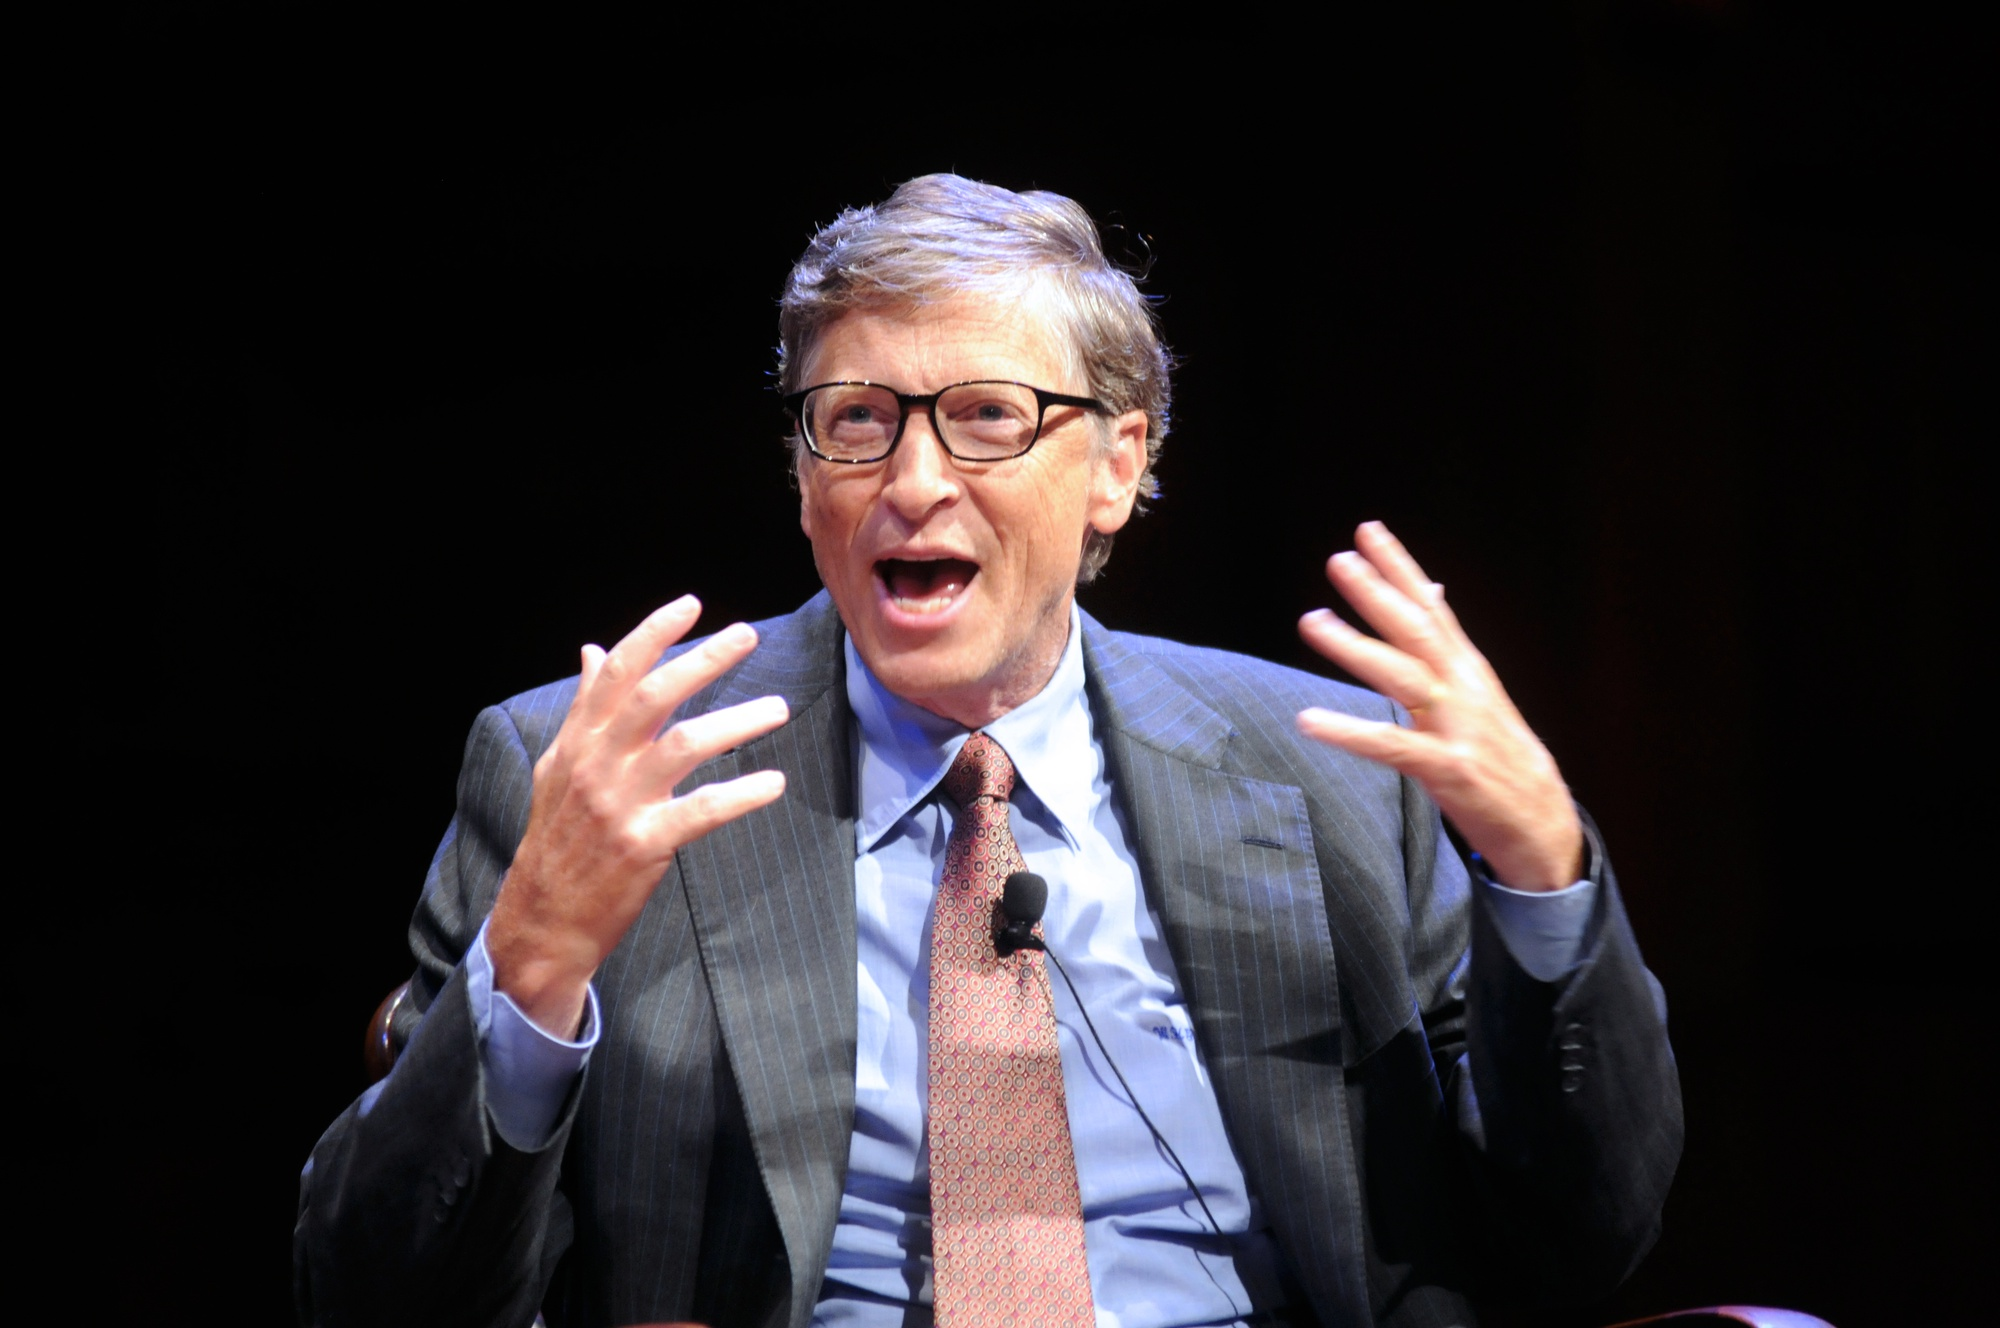 Bill Gates jokes about his reputation for not attending classes in his Harvard years with financier David M. Rubenstein during the public launch of The Harvard Campaign on Saturday. The two met for a discussion about philanthropy in Sanders Theatre as part of the weekend's launch events.